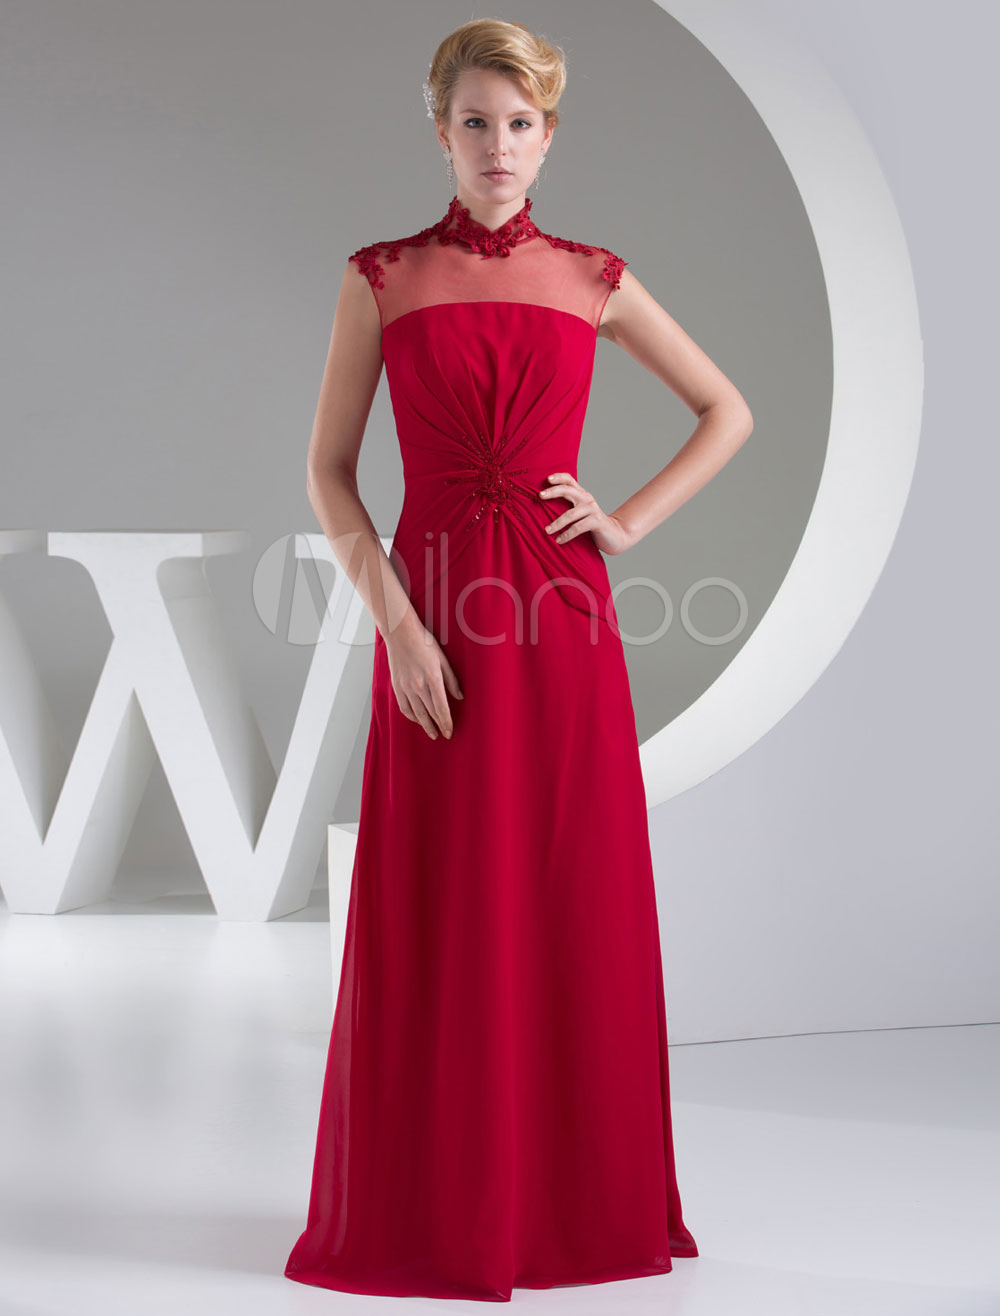 Front Knot Mother of the Bride Dress Stand Collar Lace Sheath Floor-Length Chiffon Evening Dress Milanoo (Wedding) photo